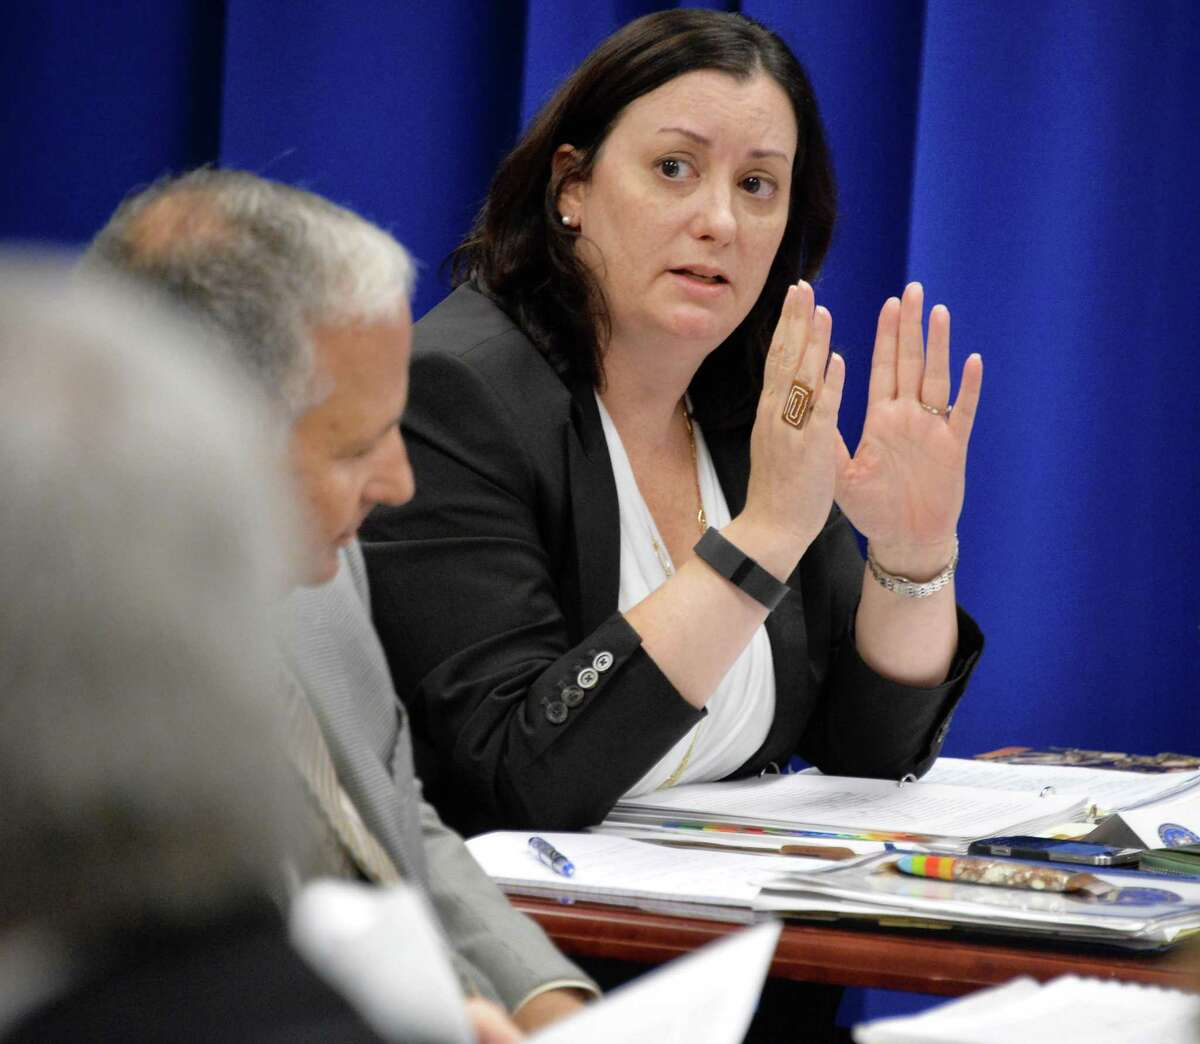 General counsel Monica Stamm during a meeting of the New York State Joint Commission on Public Ethics Wednesday Oct. 7, 2015 in Albany, NY. (John Carl D'Annibale / Times Union)